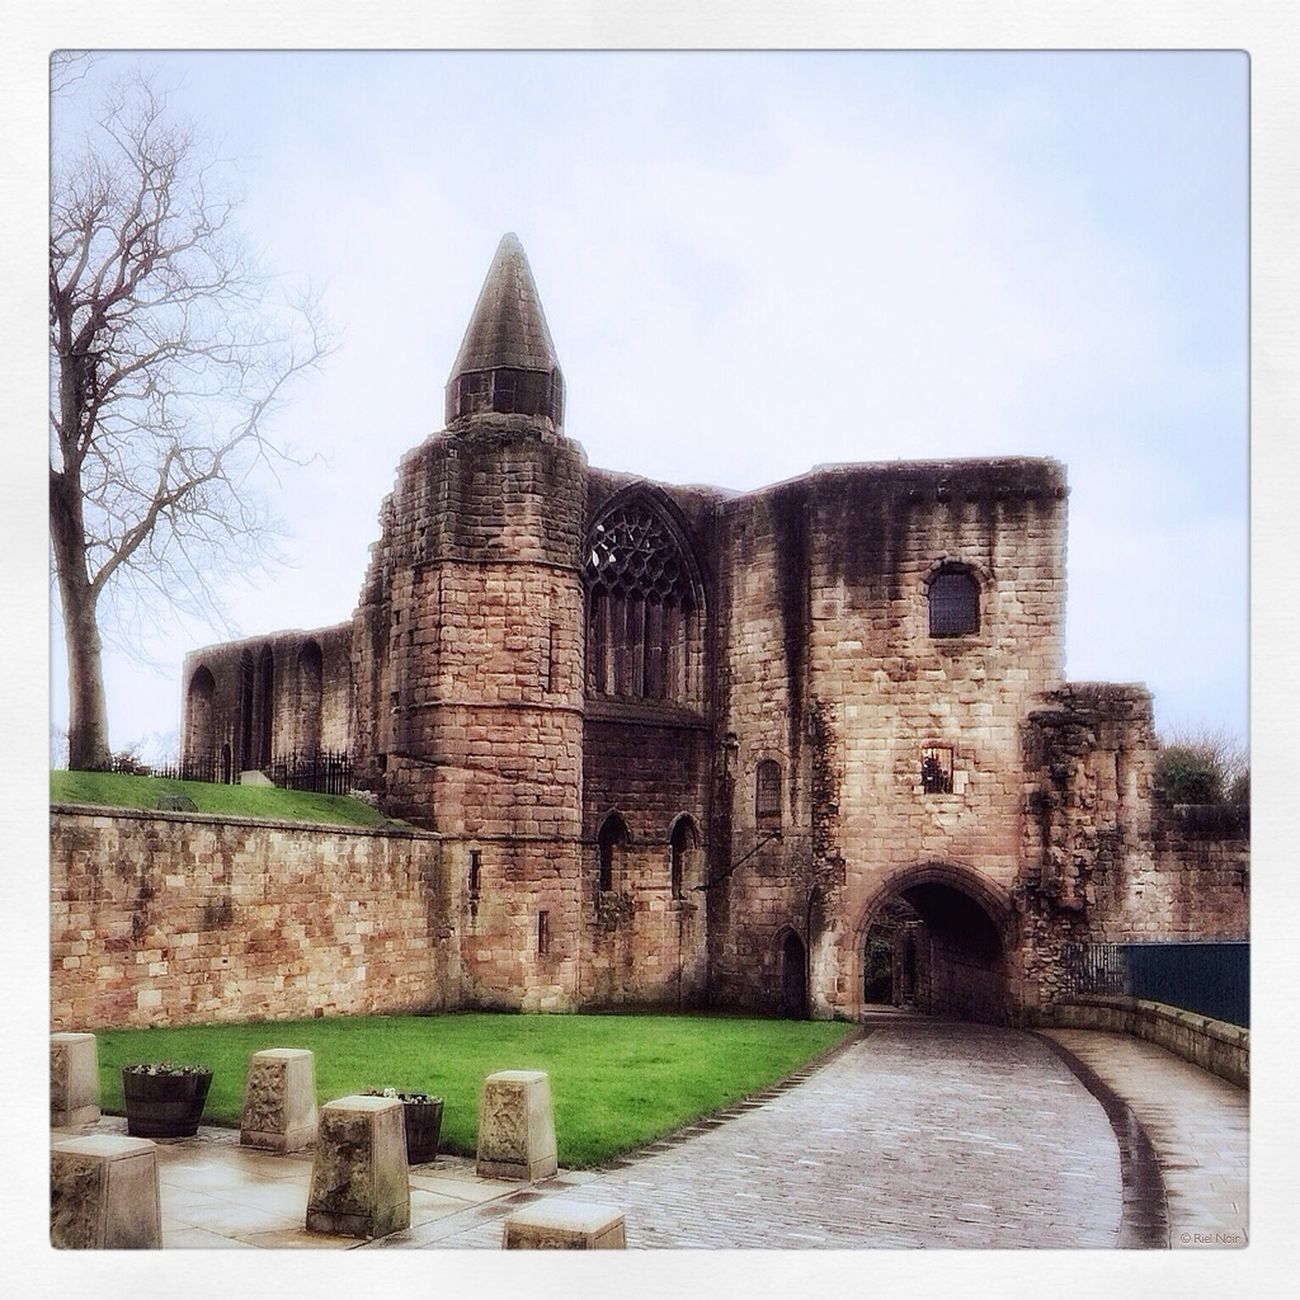 The Abbey, Dunfermline #iPhone5S #iPhone #iPad #iPhoneography #Abbey #Dunfermline Mobile Photography AMPt_community Dunfermline Theappwhisperer facebook.com/artistRielNoir